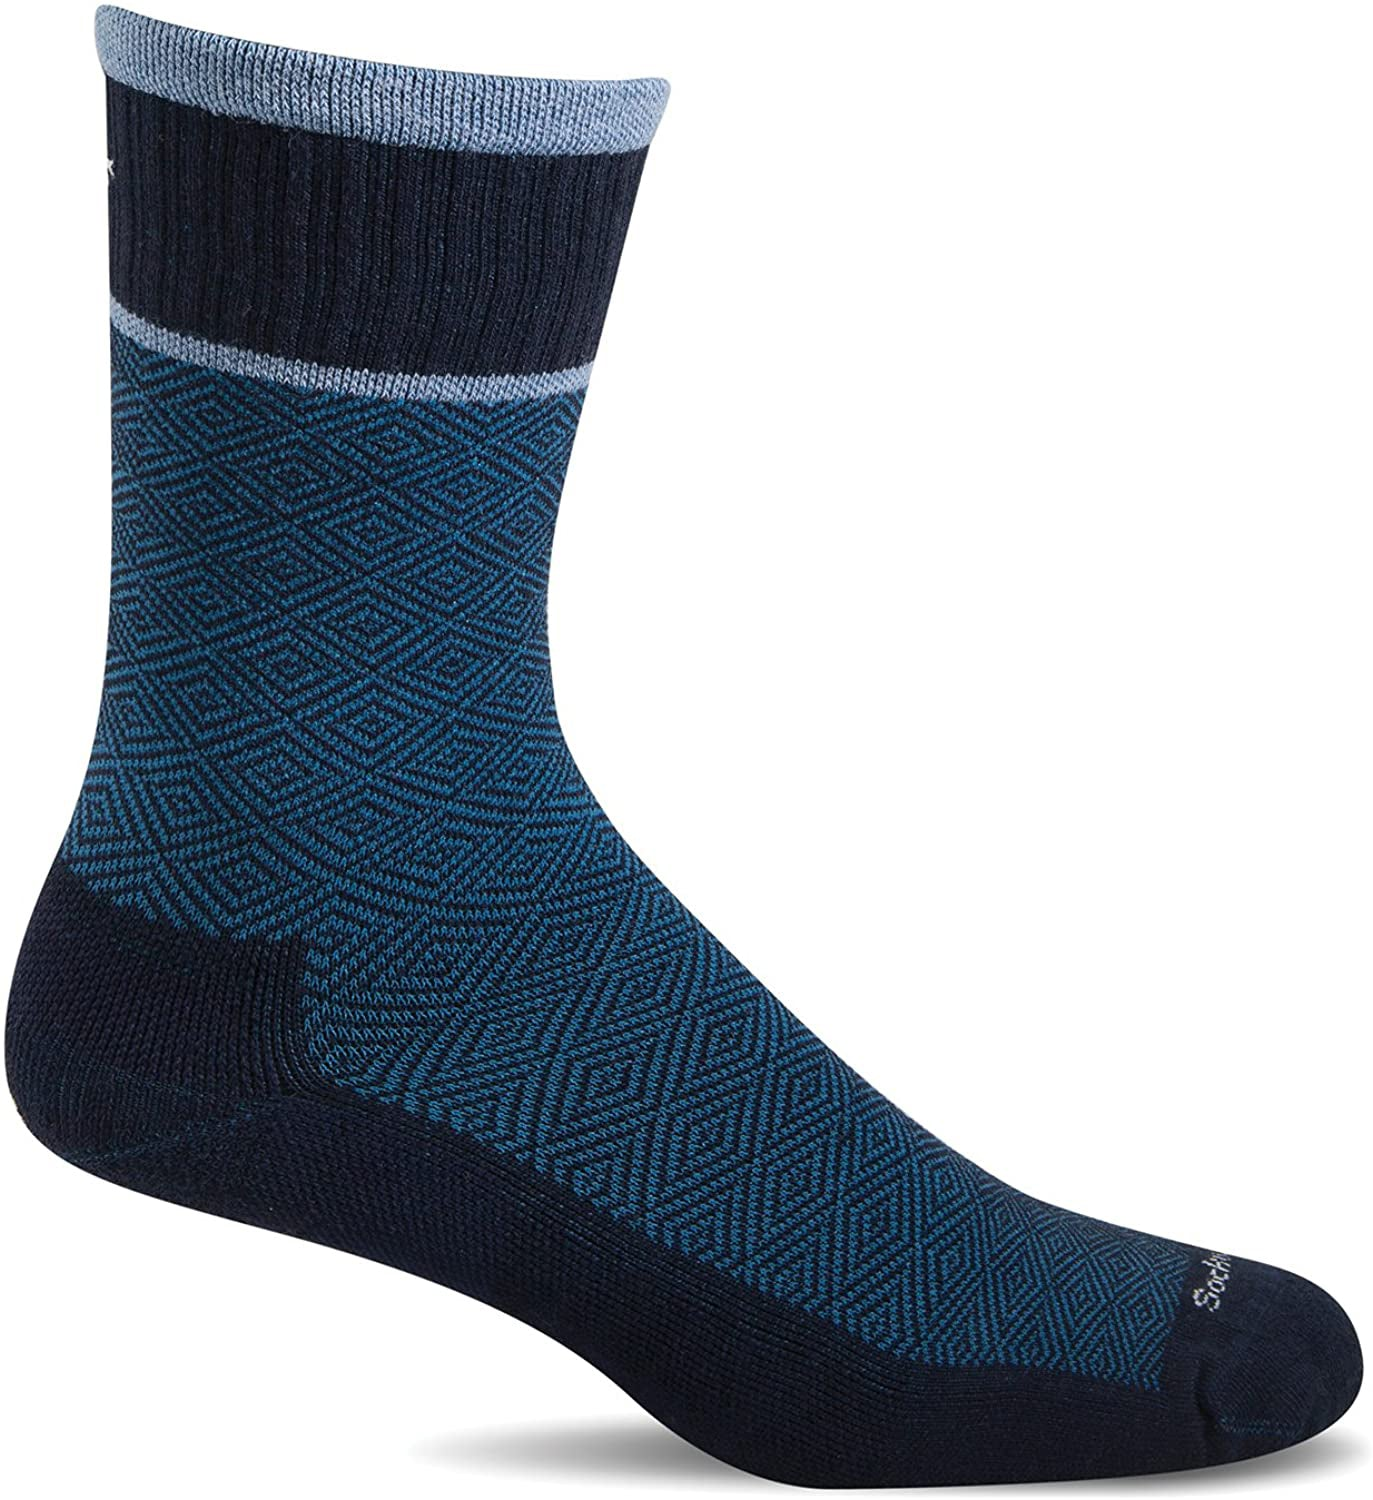 Sockwell Men's Plantar Cush Crew Sock in Navy color from the side